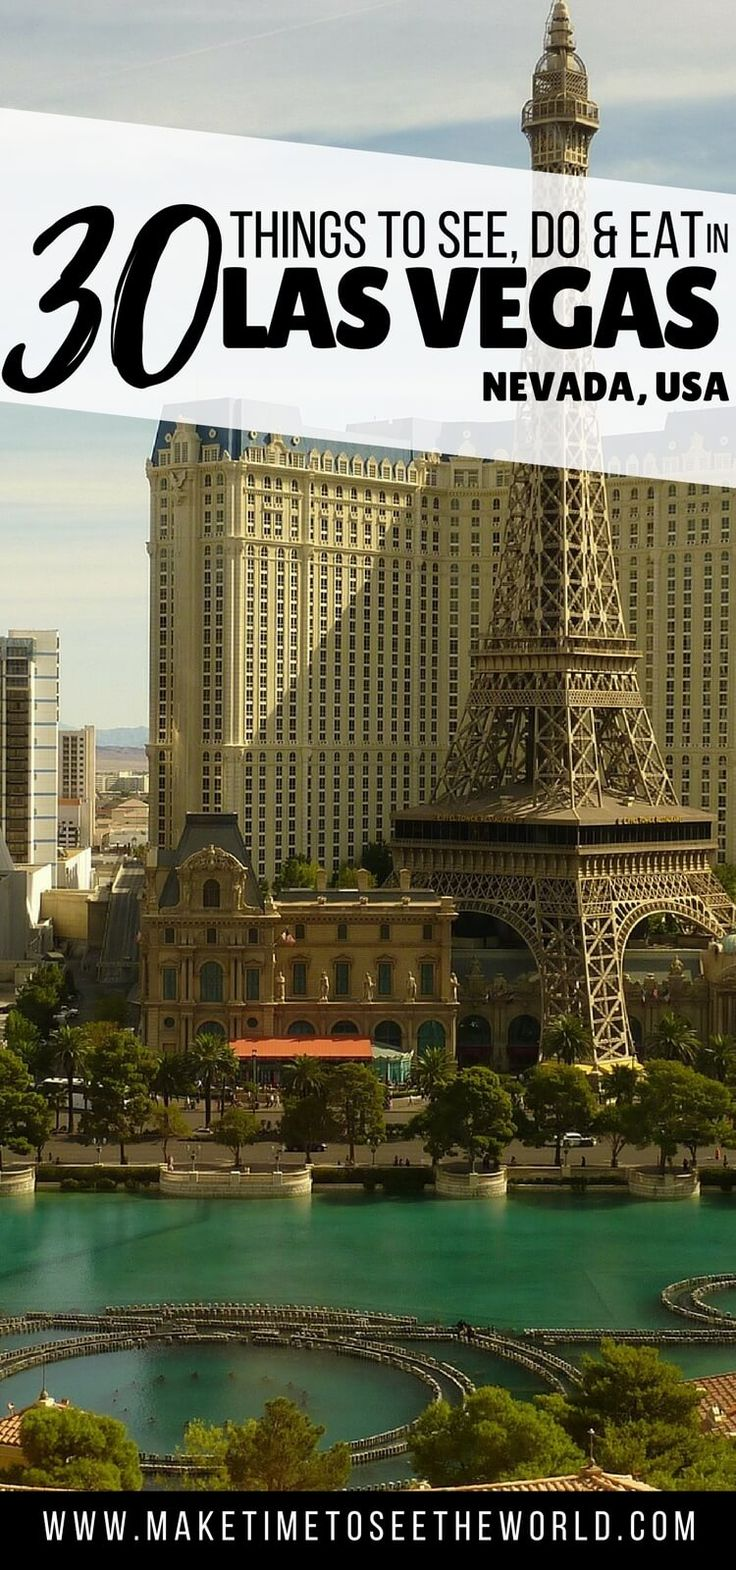 The Ultimate Las Vegas travel guide to help you plan your visit inc Where to Stay, What to eat, the Best Things To Do in Las Vegas + Day Trip Ideas! ***************************************************************************** Las Vegas   Las Vegas Tips